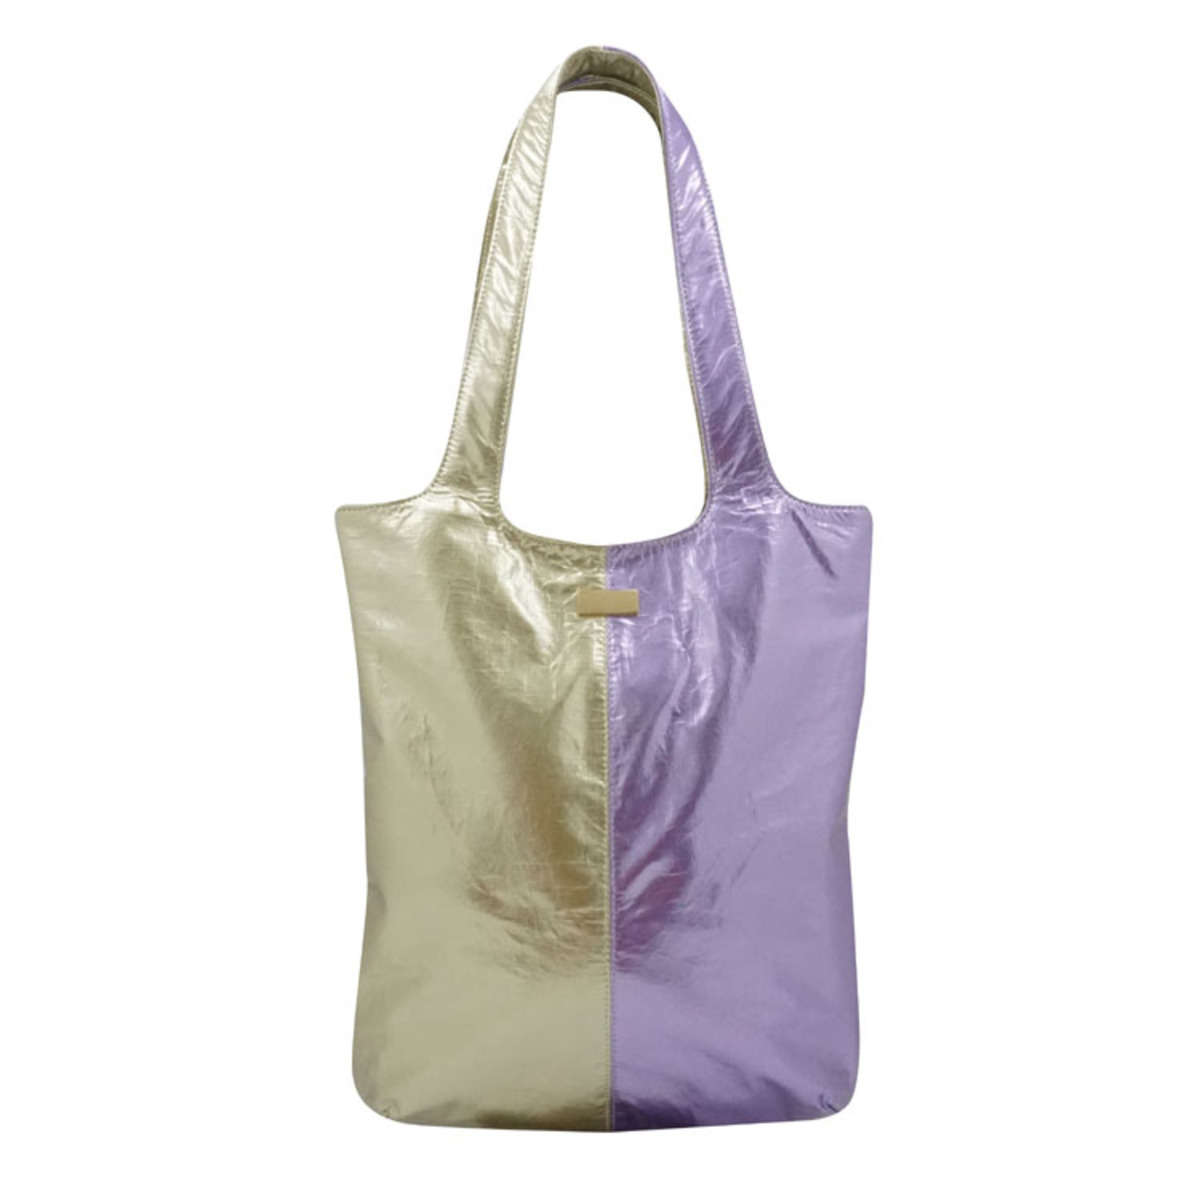 Two Zone color Metallic Tote Bag